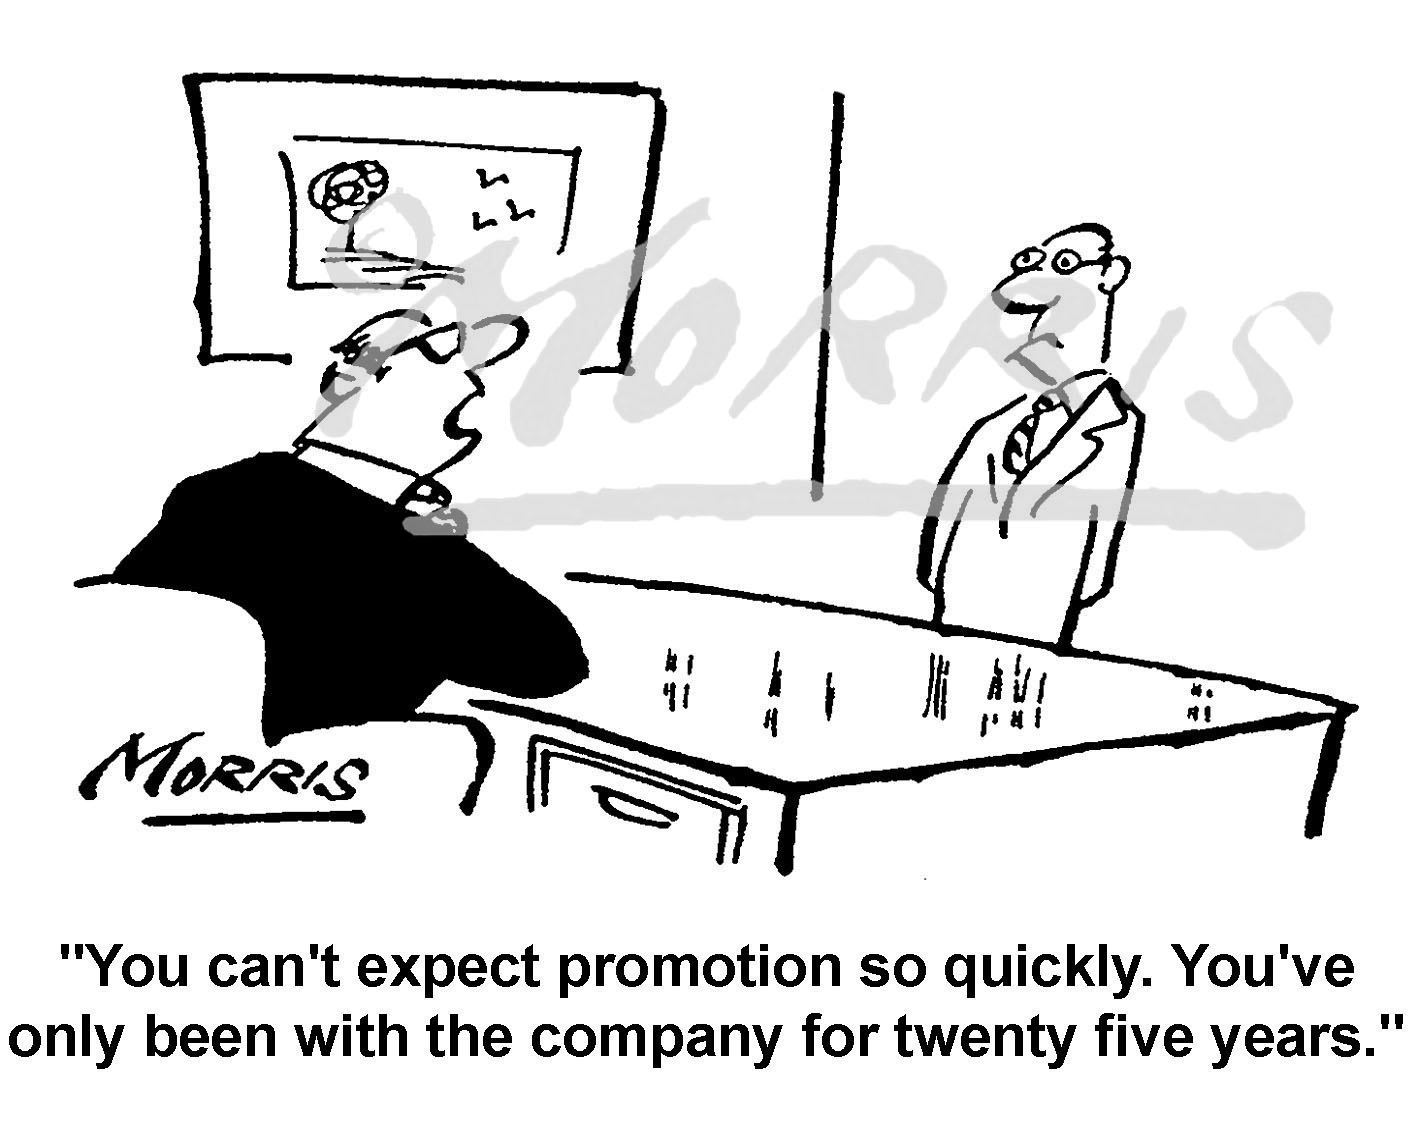 Employee company job promotion cartoon – Ref: 5035bw